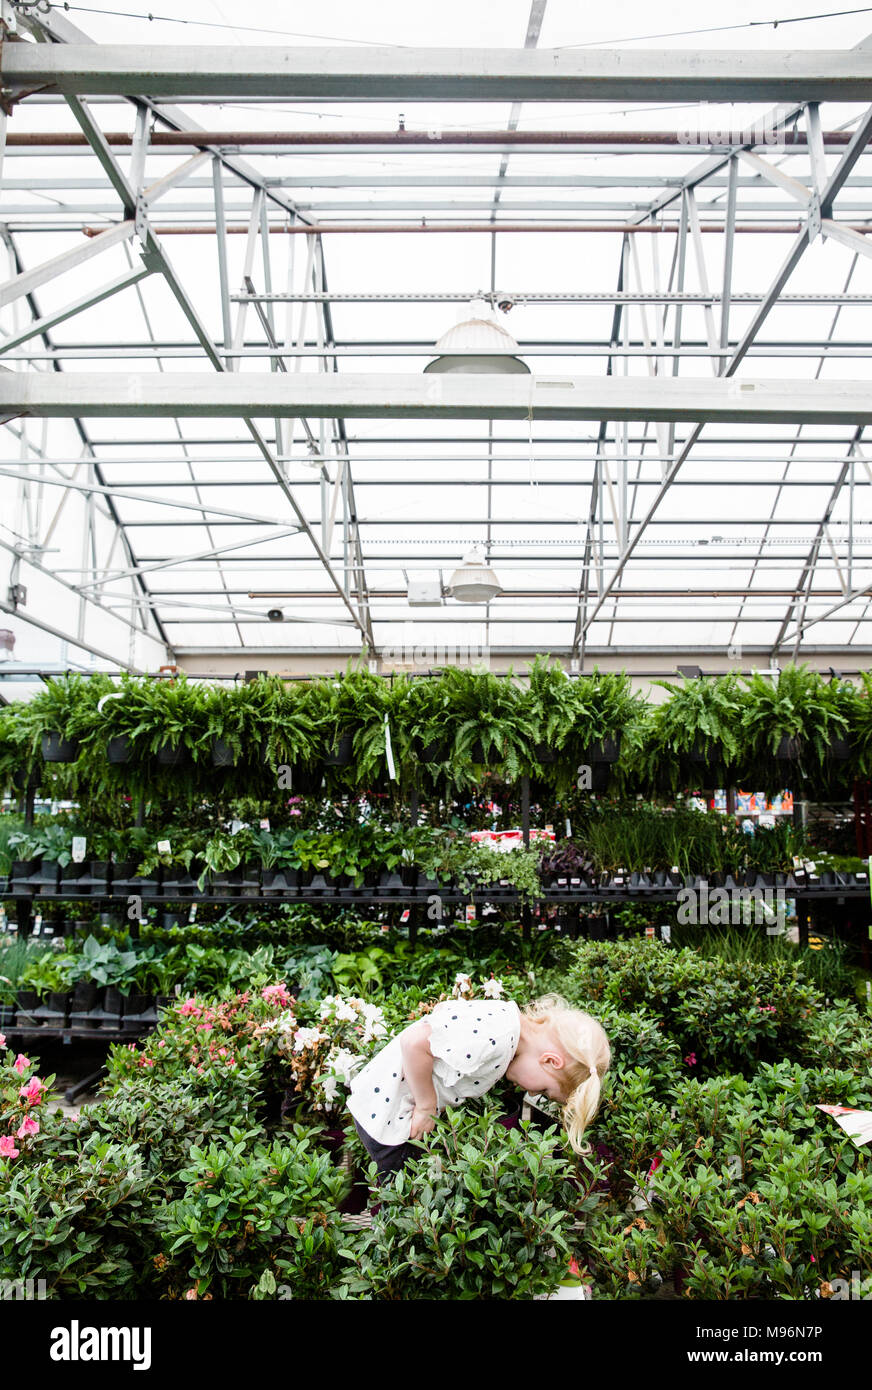 Girl in and around greenhouse within Garden Center - Stock Image